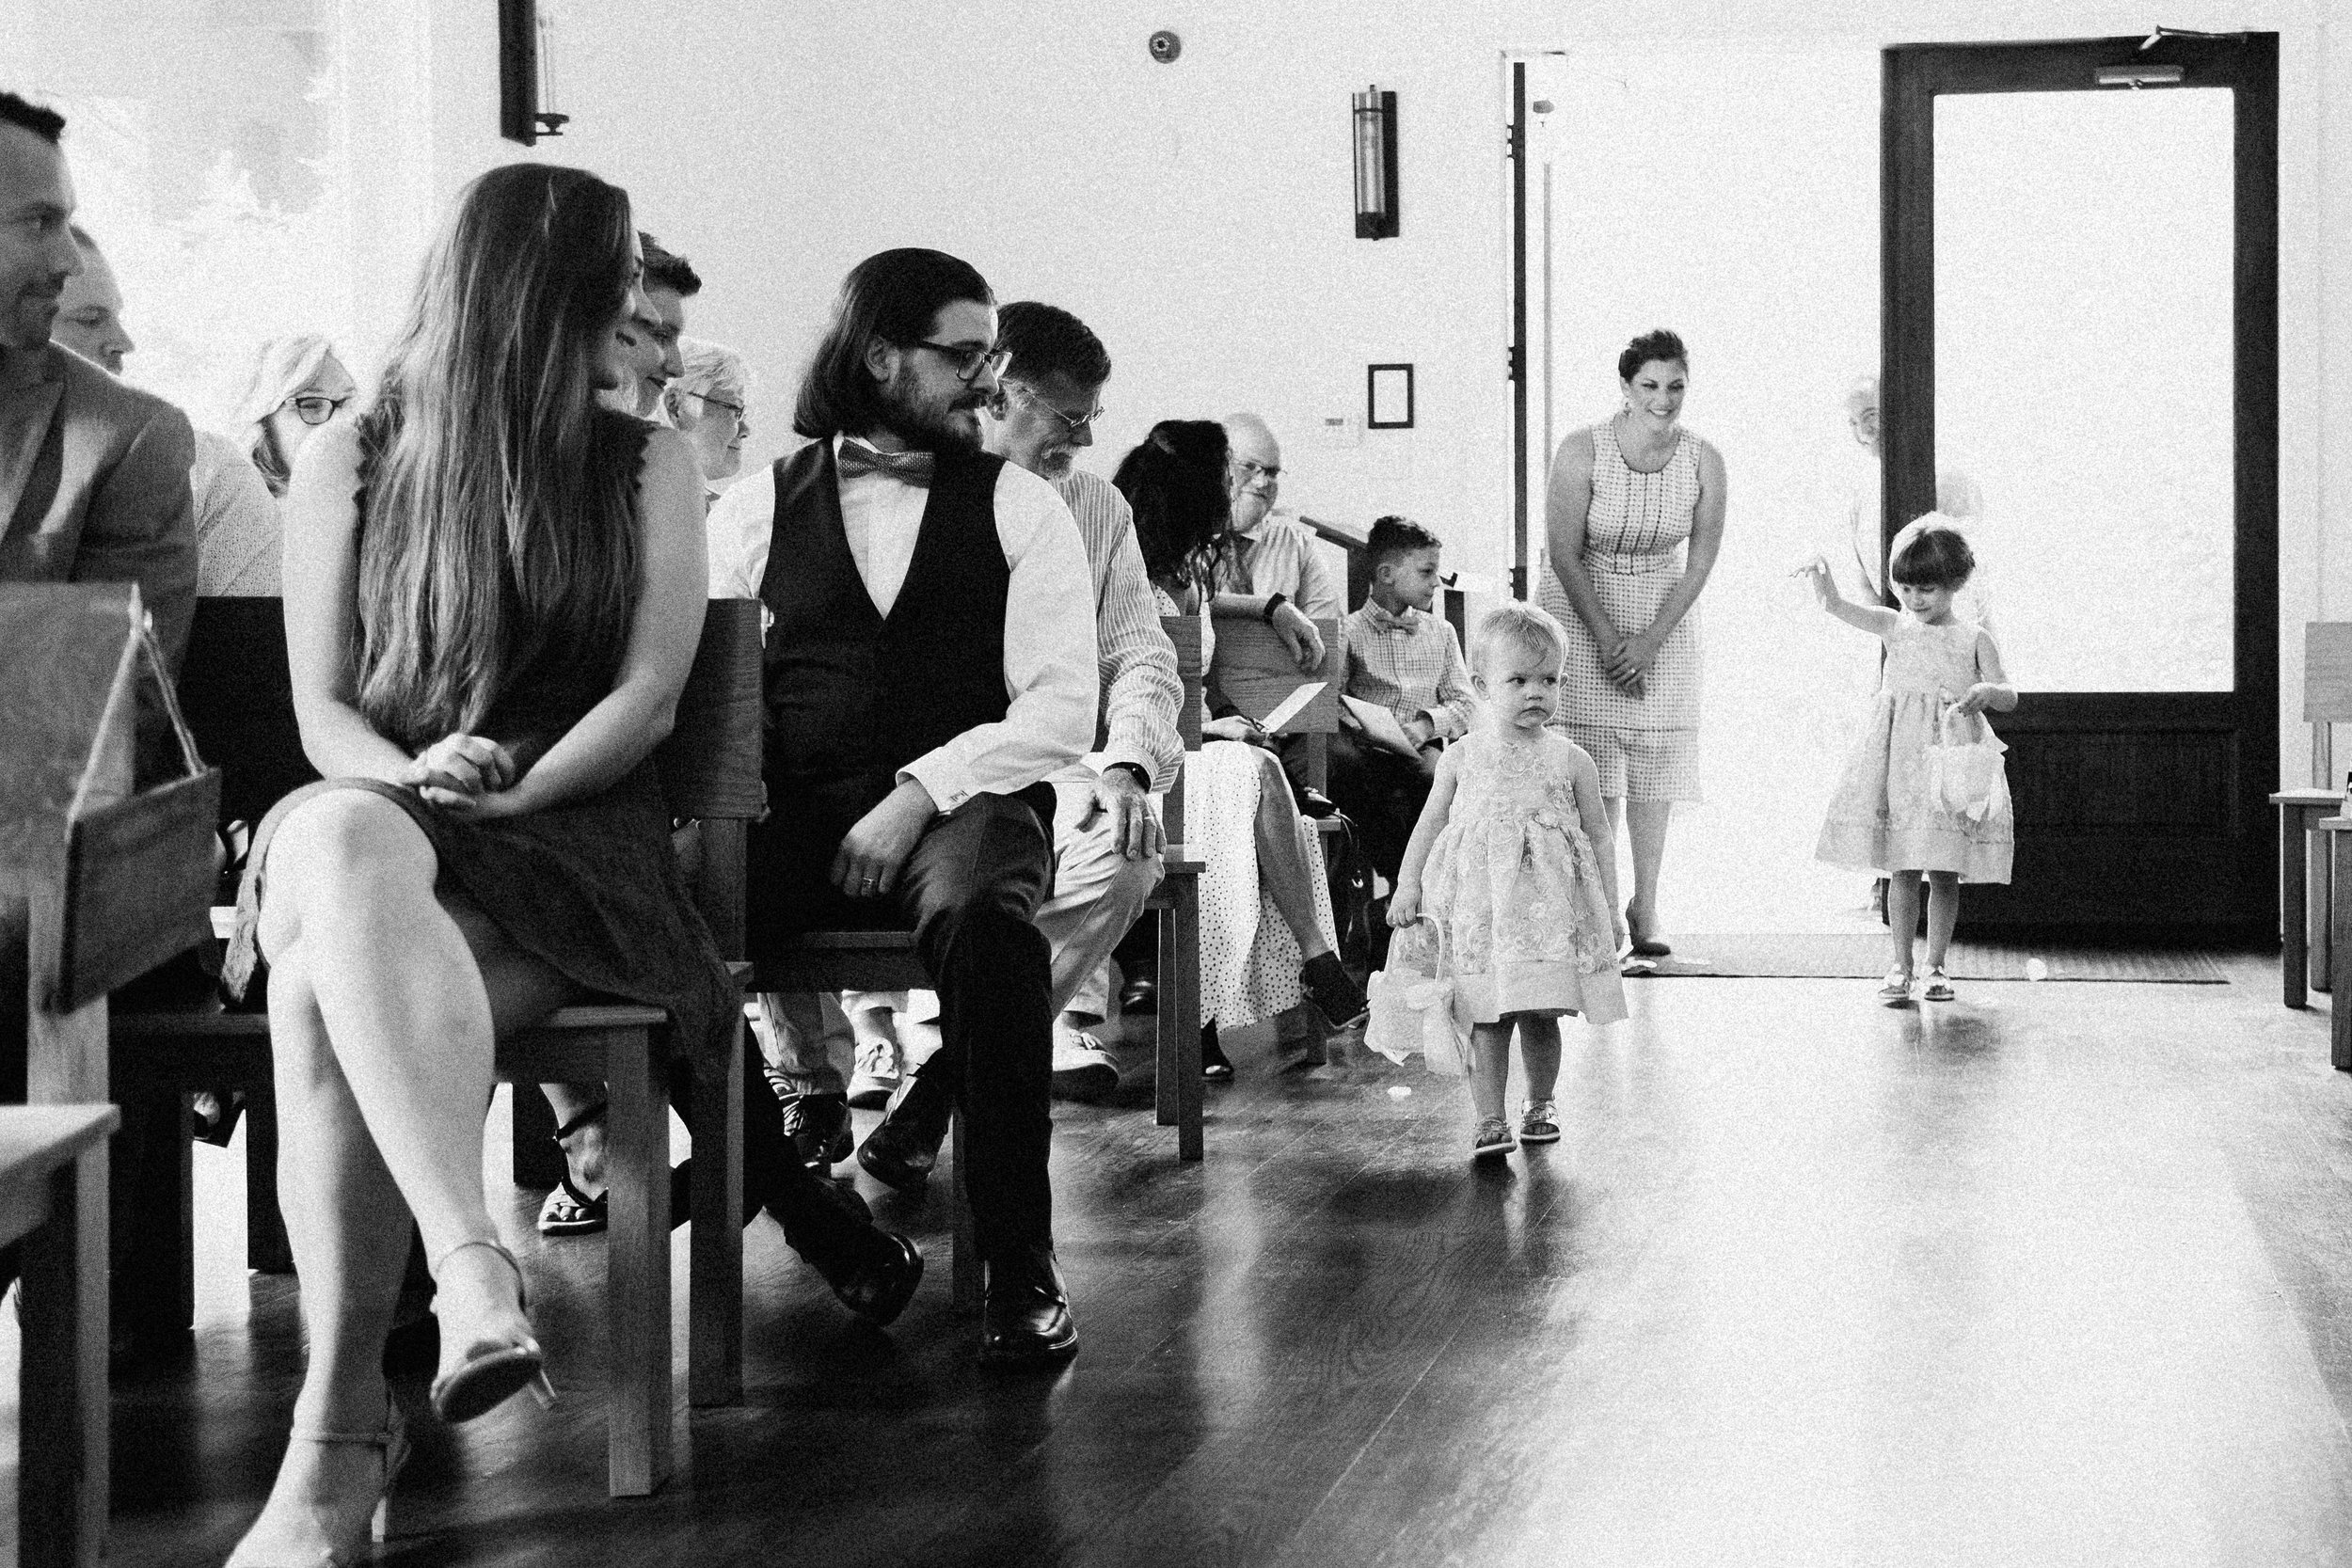 dahlonega_juliette_chapel_photojournalism_atlanta_wedding_photographers_1692.jpg